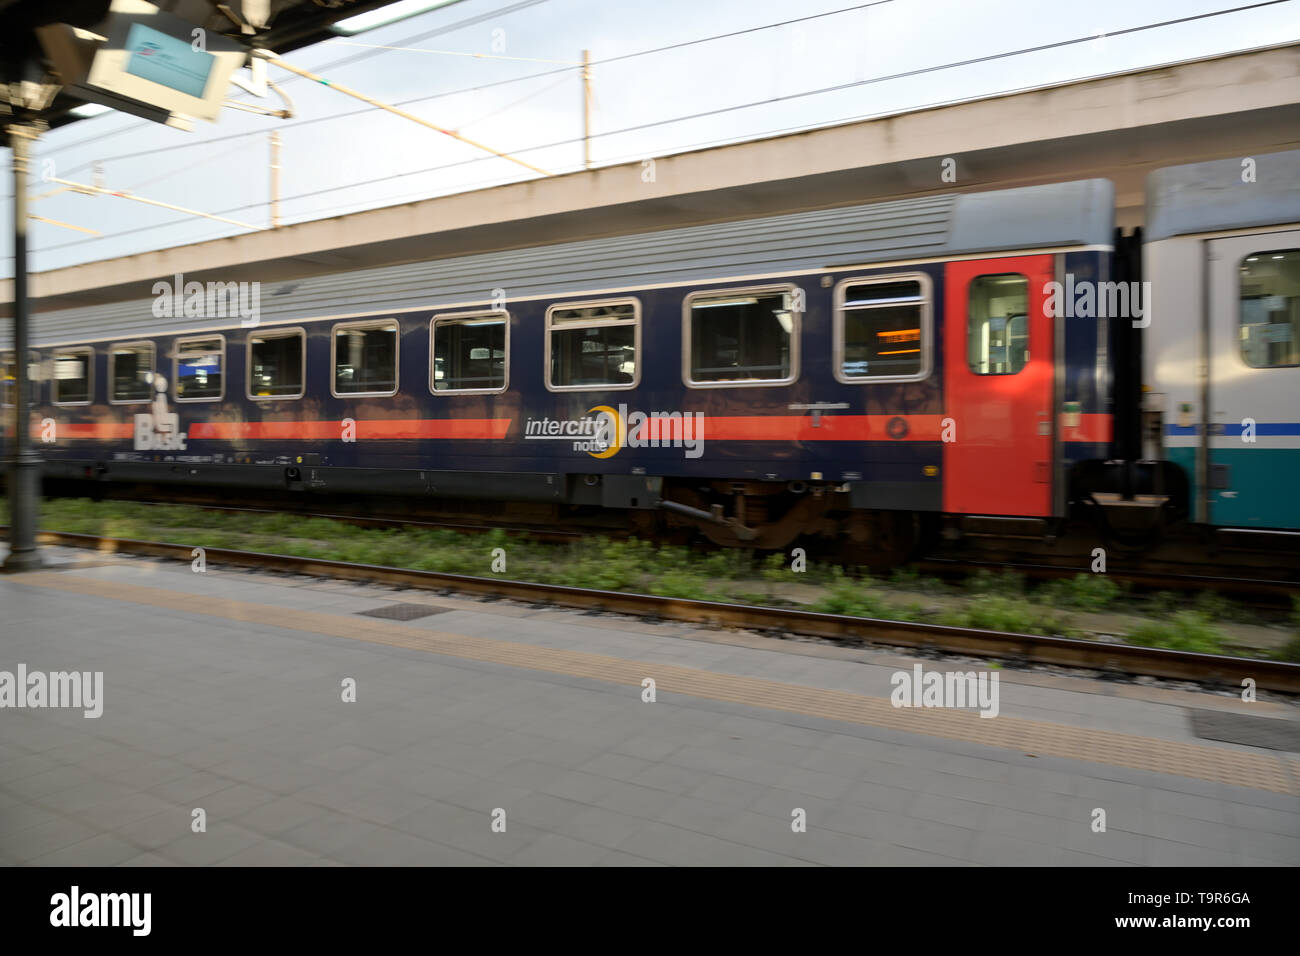 A Night Train (intercity notte) from Lecce to Milano, Italy - Stock Image